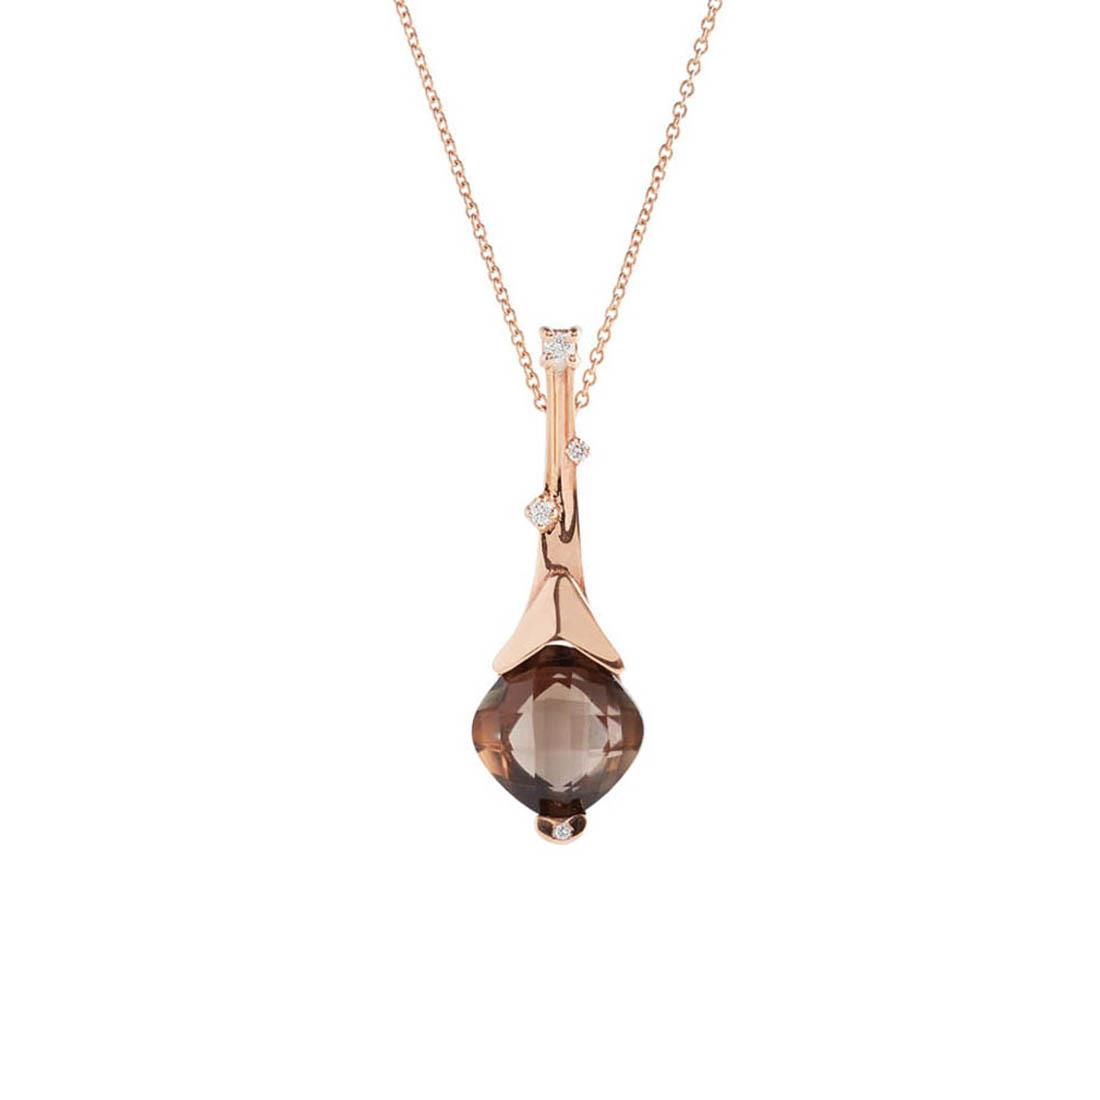 Rose gold pendant with 3.95 ct square briolette cut smoky quartz and 0.07 ct diamonds - 42 cm lenght. 